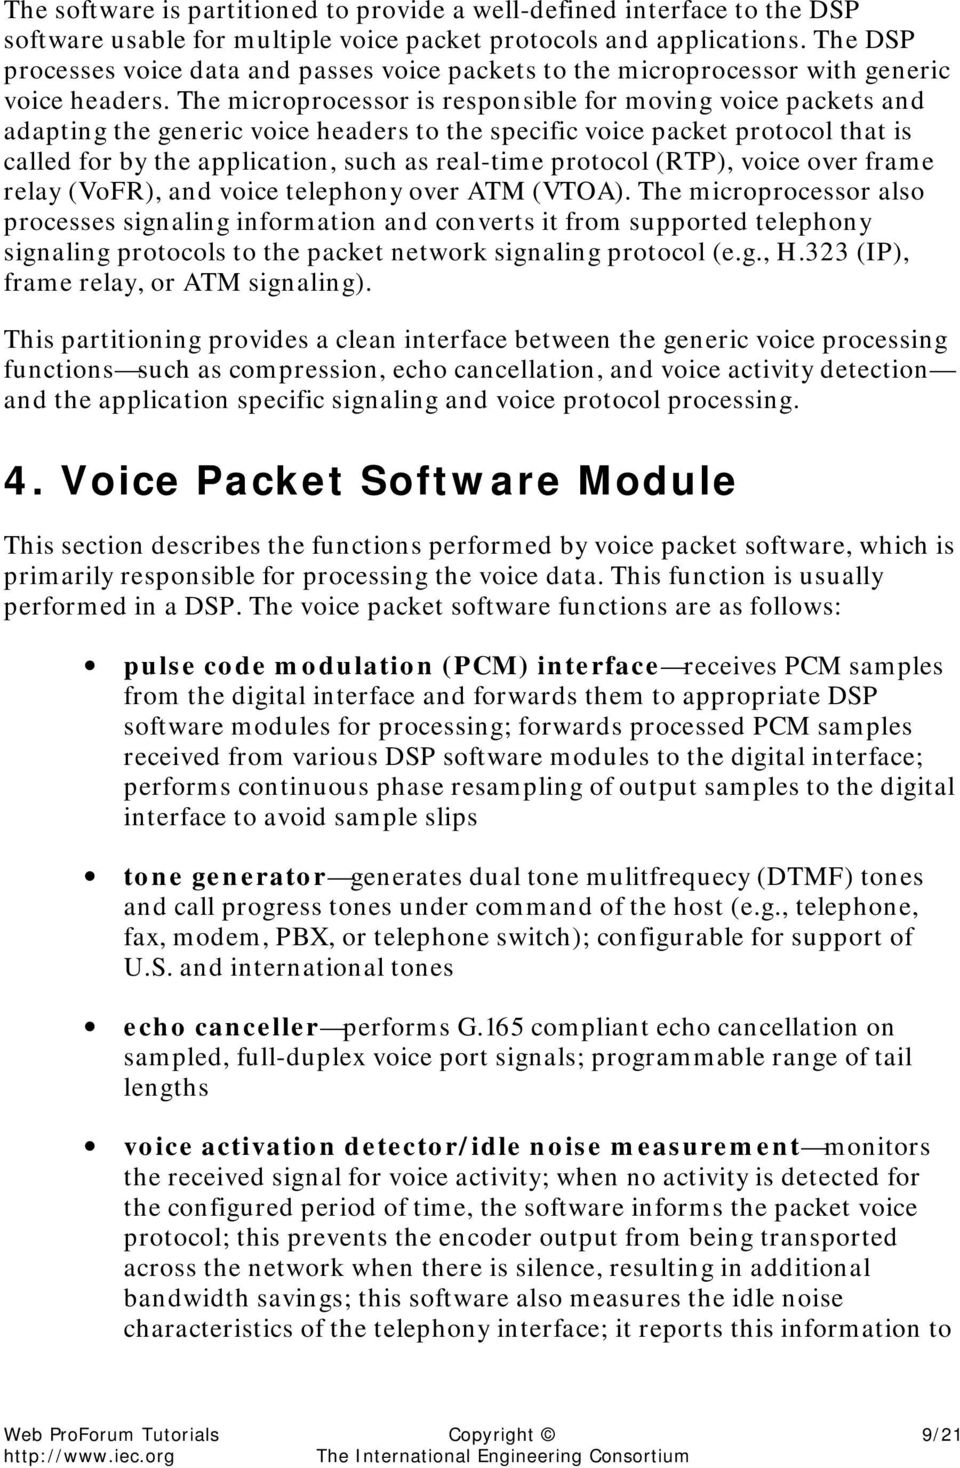 The microprocessor is responsible for moving voice packets and adapting the generic voice headers to the specific voice packet protocol that is called for by the application, such as real-time